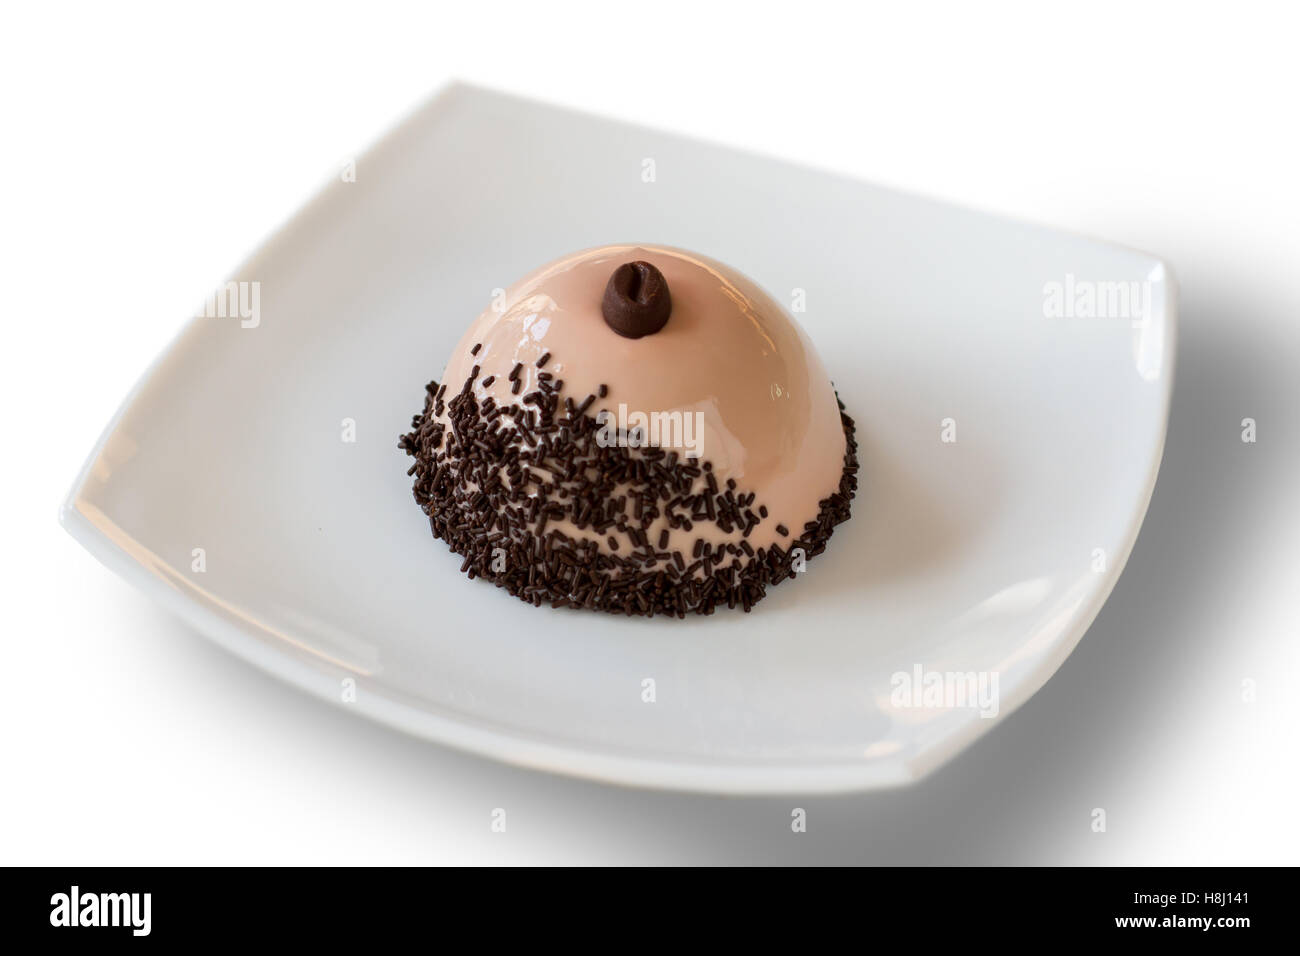 Dome shaped dessert on plate. - Stock Image